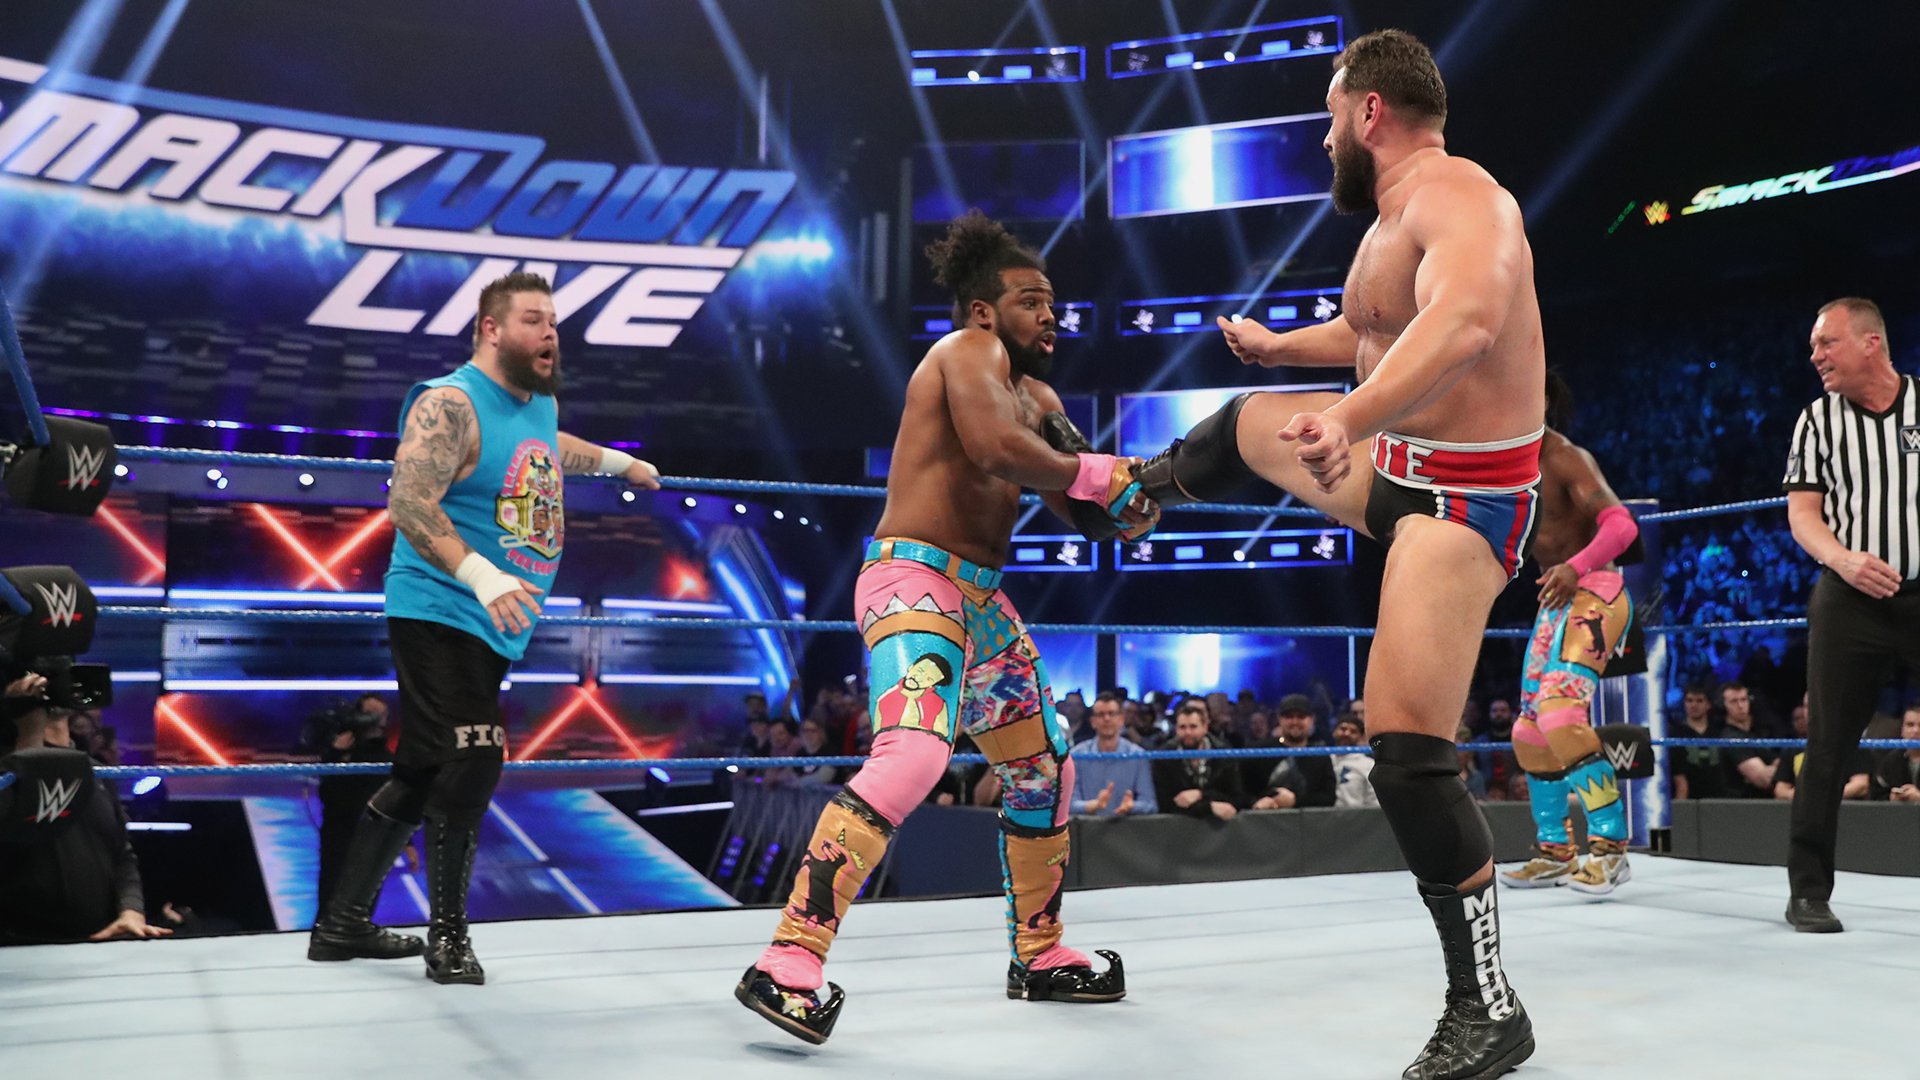 Kevin Owens & The New Day vs. Cesaro, Shinsuke Nakamura & Rusev: SmackDown LIVE, 16 Avril 2019